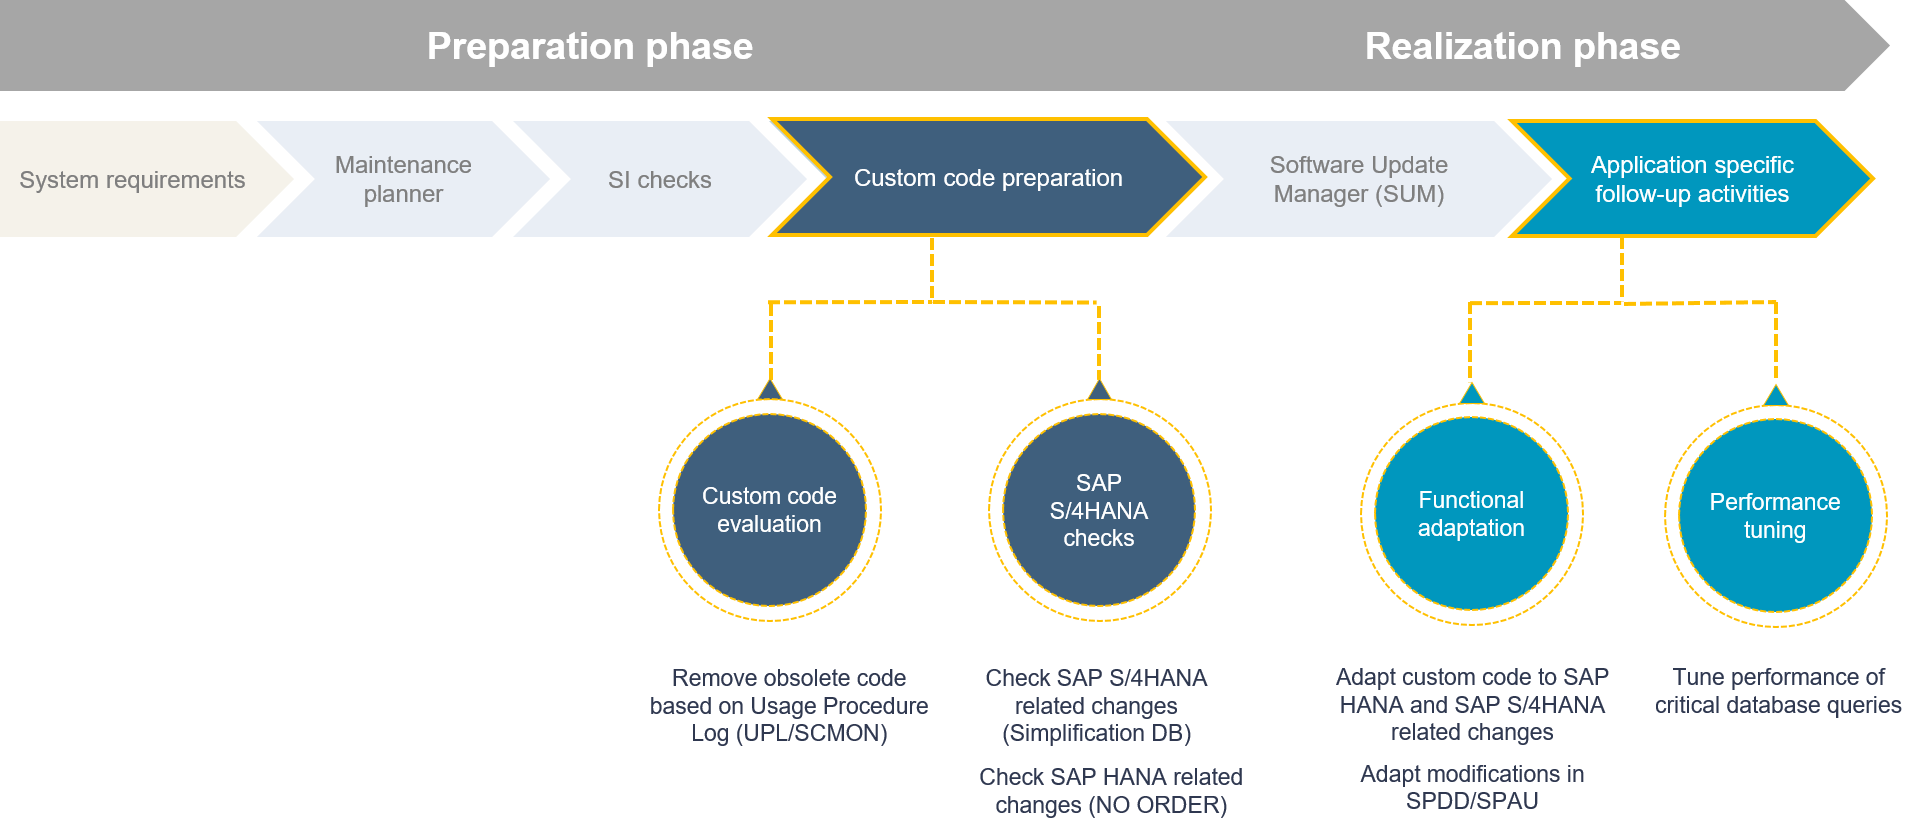 Sap S 4hana System Conversion Custom Code Adaptation Process Arrow Layout 7 Stages Home Electrical Wiring Powerpoint Slides Please Note All Following Recommendations Processes And The Tools For Handling On Way To Are Largely Same As